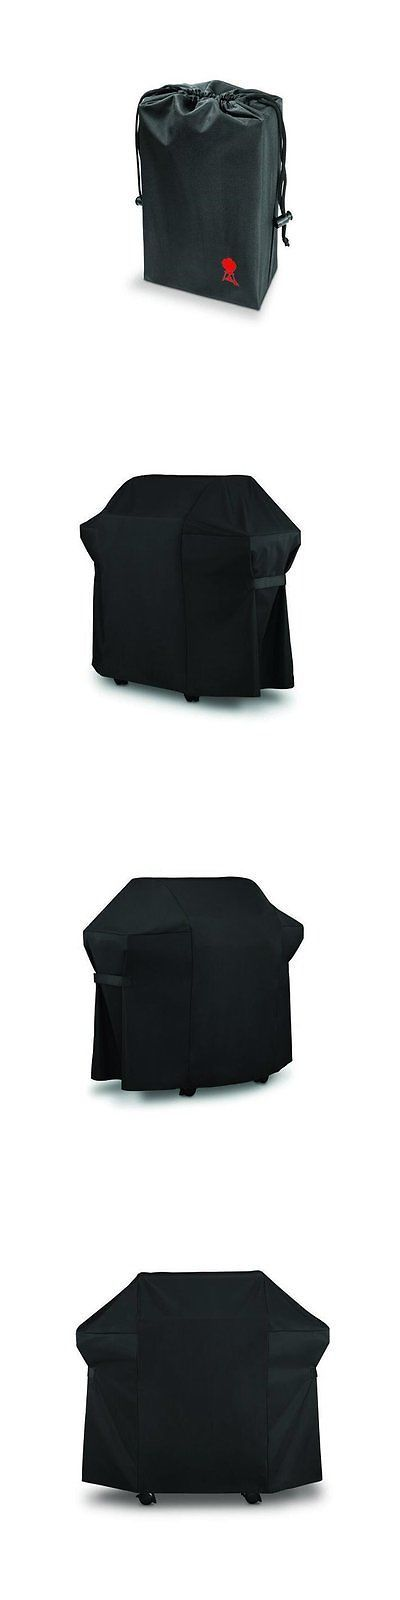 barbecue and grill covers weber bbq gas grill cover for weber grill - Small Gas Grills